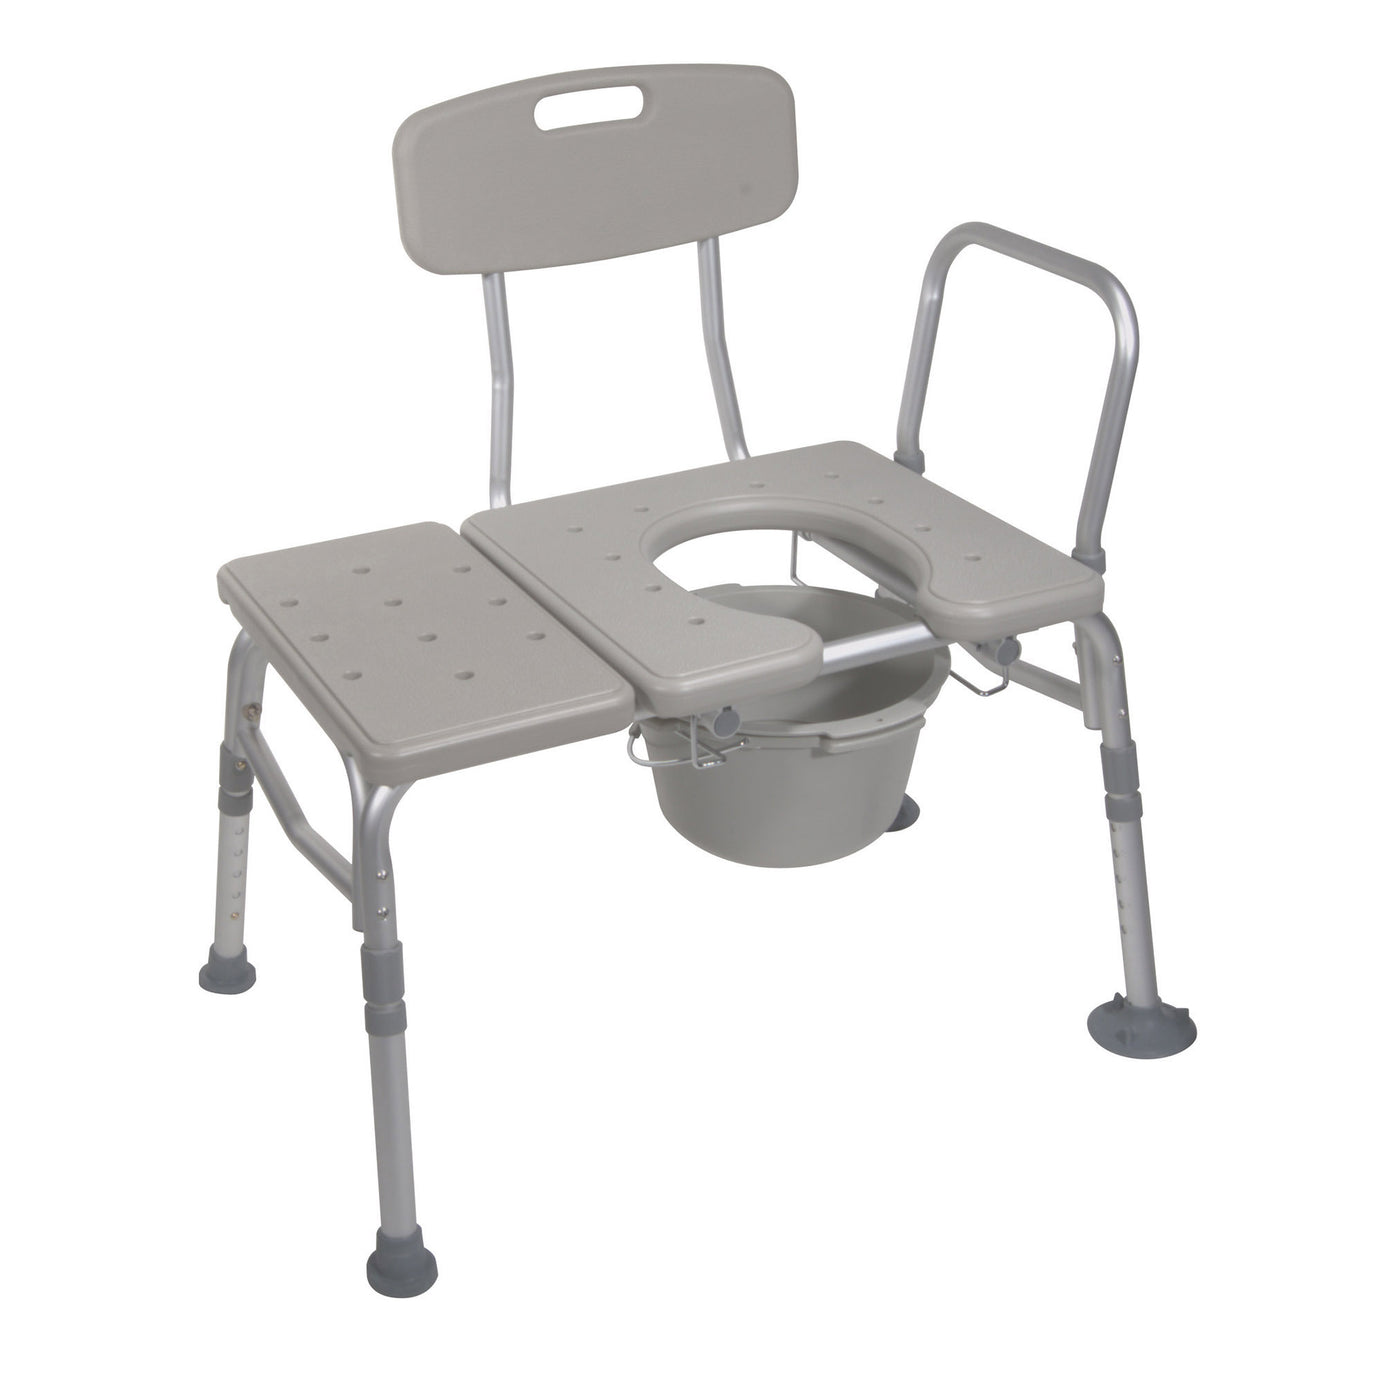 Fine Combination Plastic Transfer Bench With Commode Opening Spiritservingveterans Wood Chair Design Ideas Spiritservingveteransorg